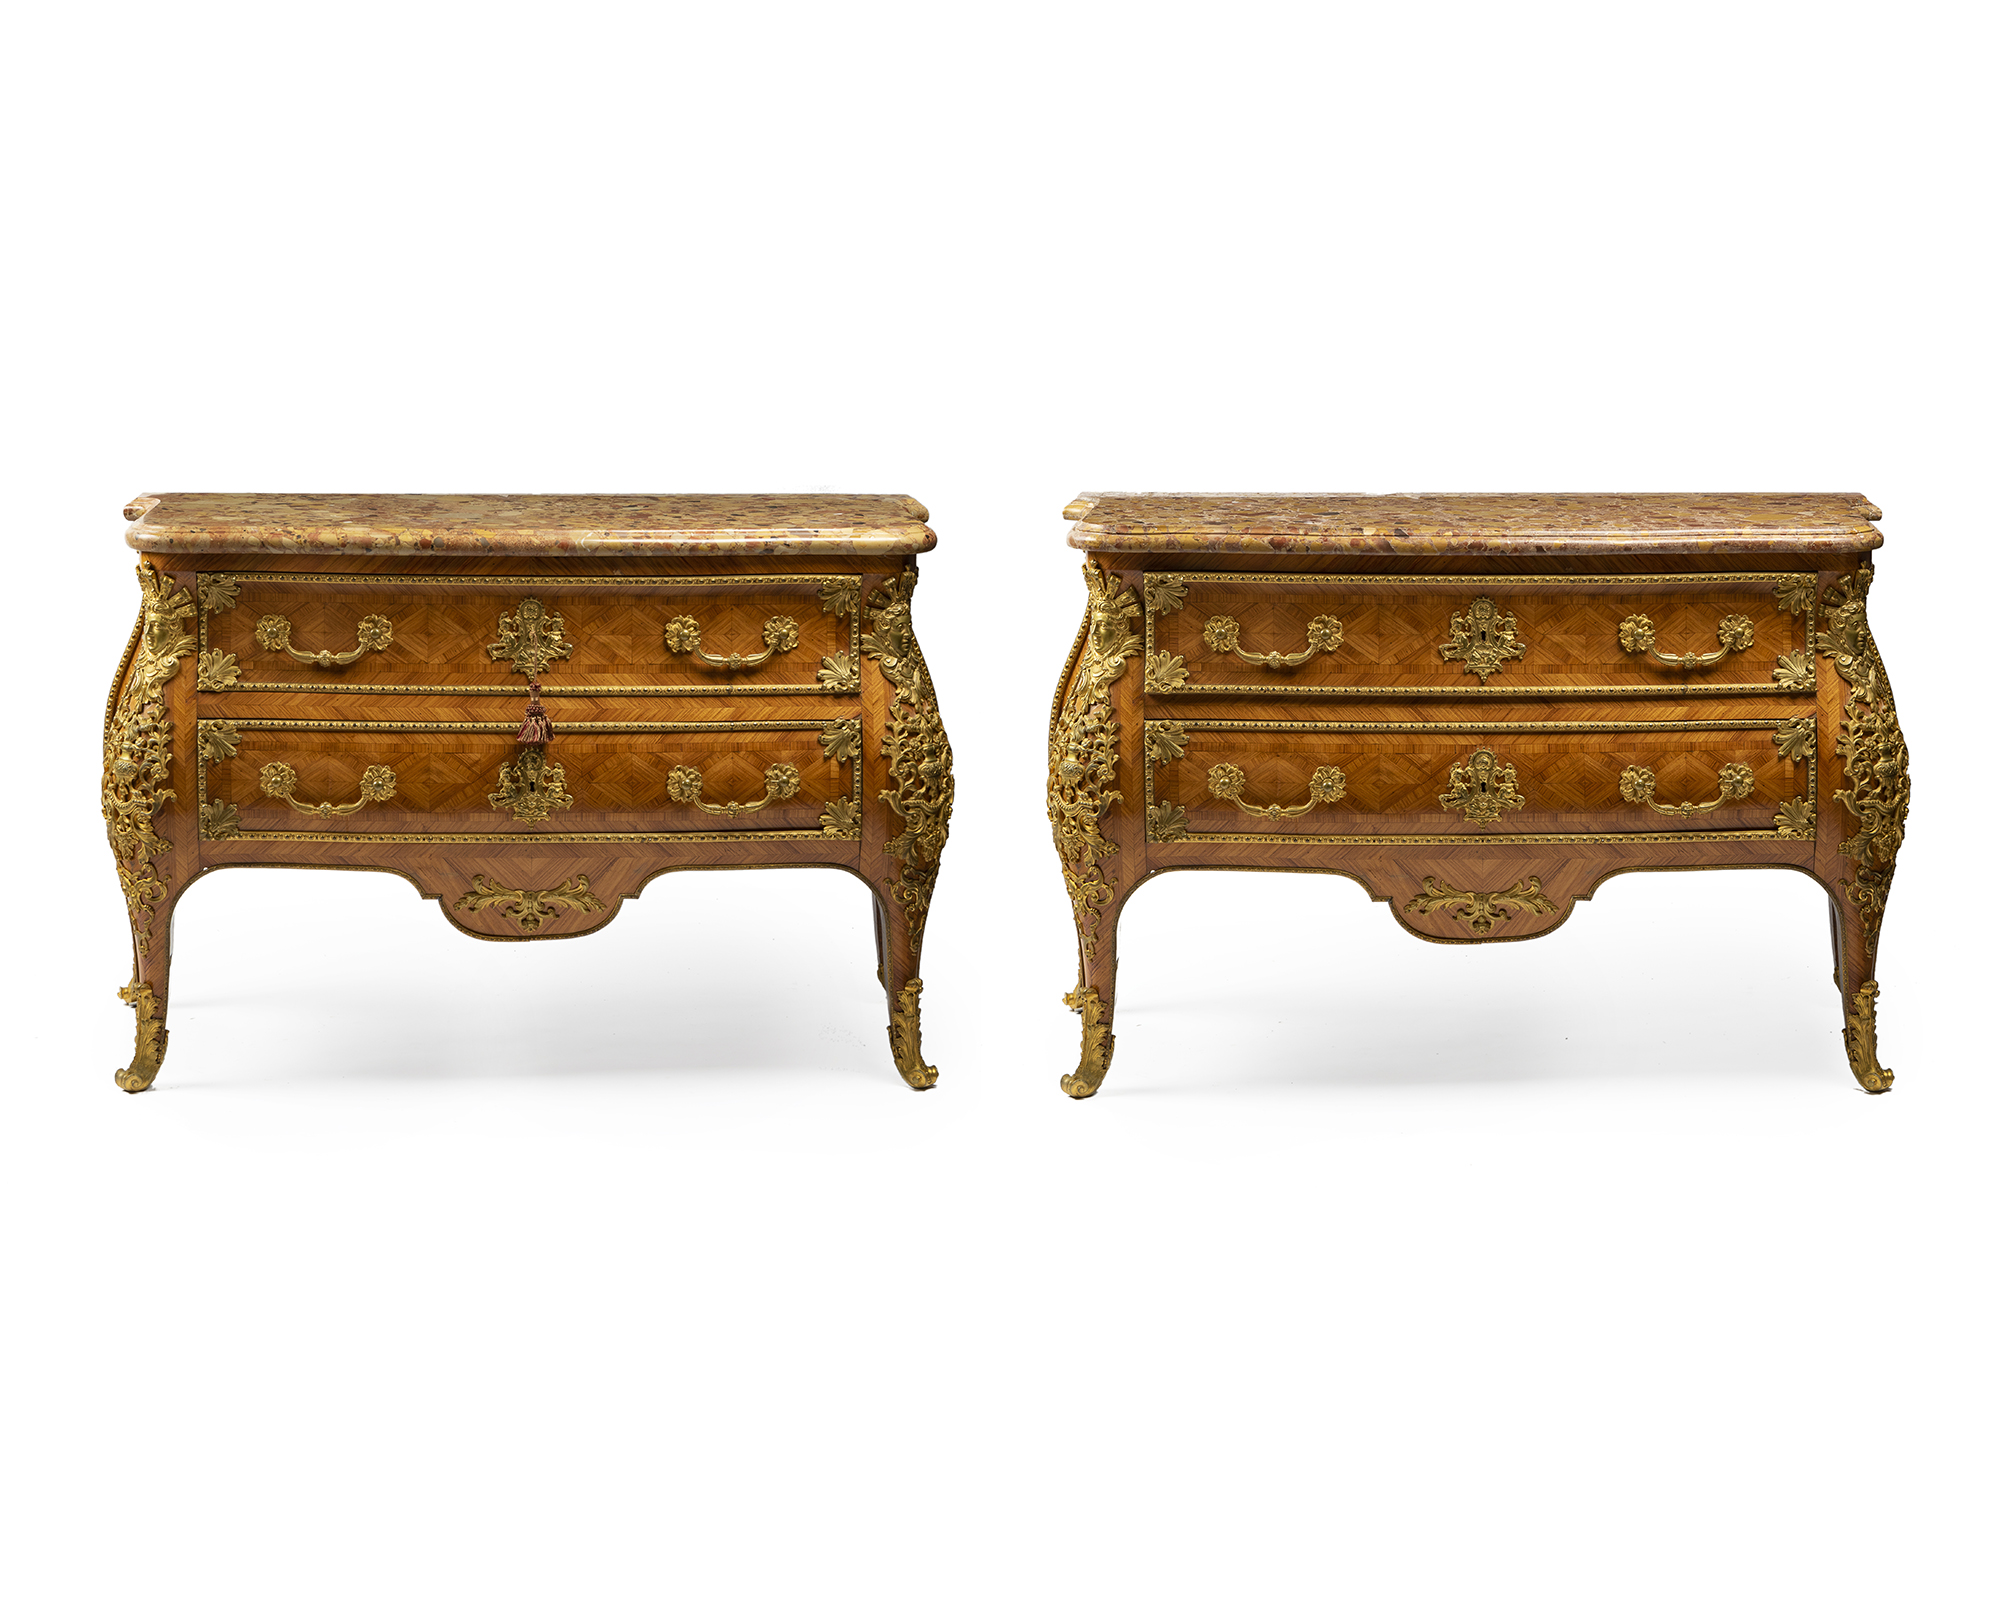 A pair of gilt bronze-mounted kingwood parquetry commodes en tombeau, est: $5000-7000